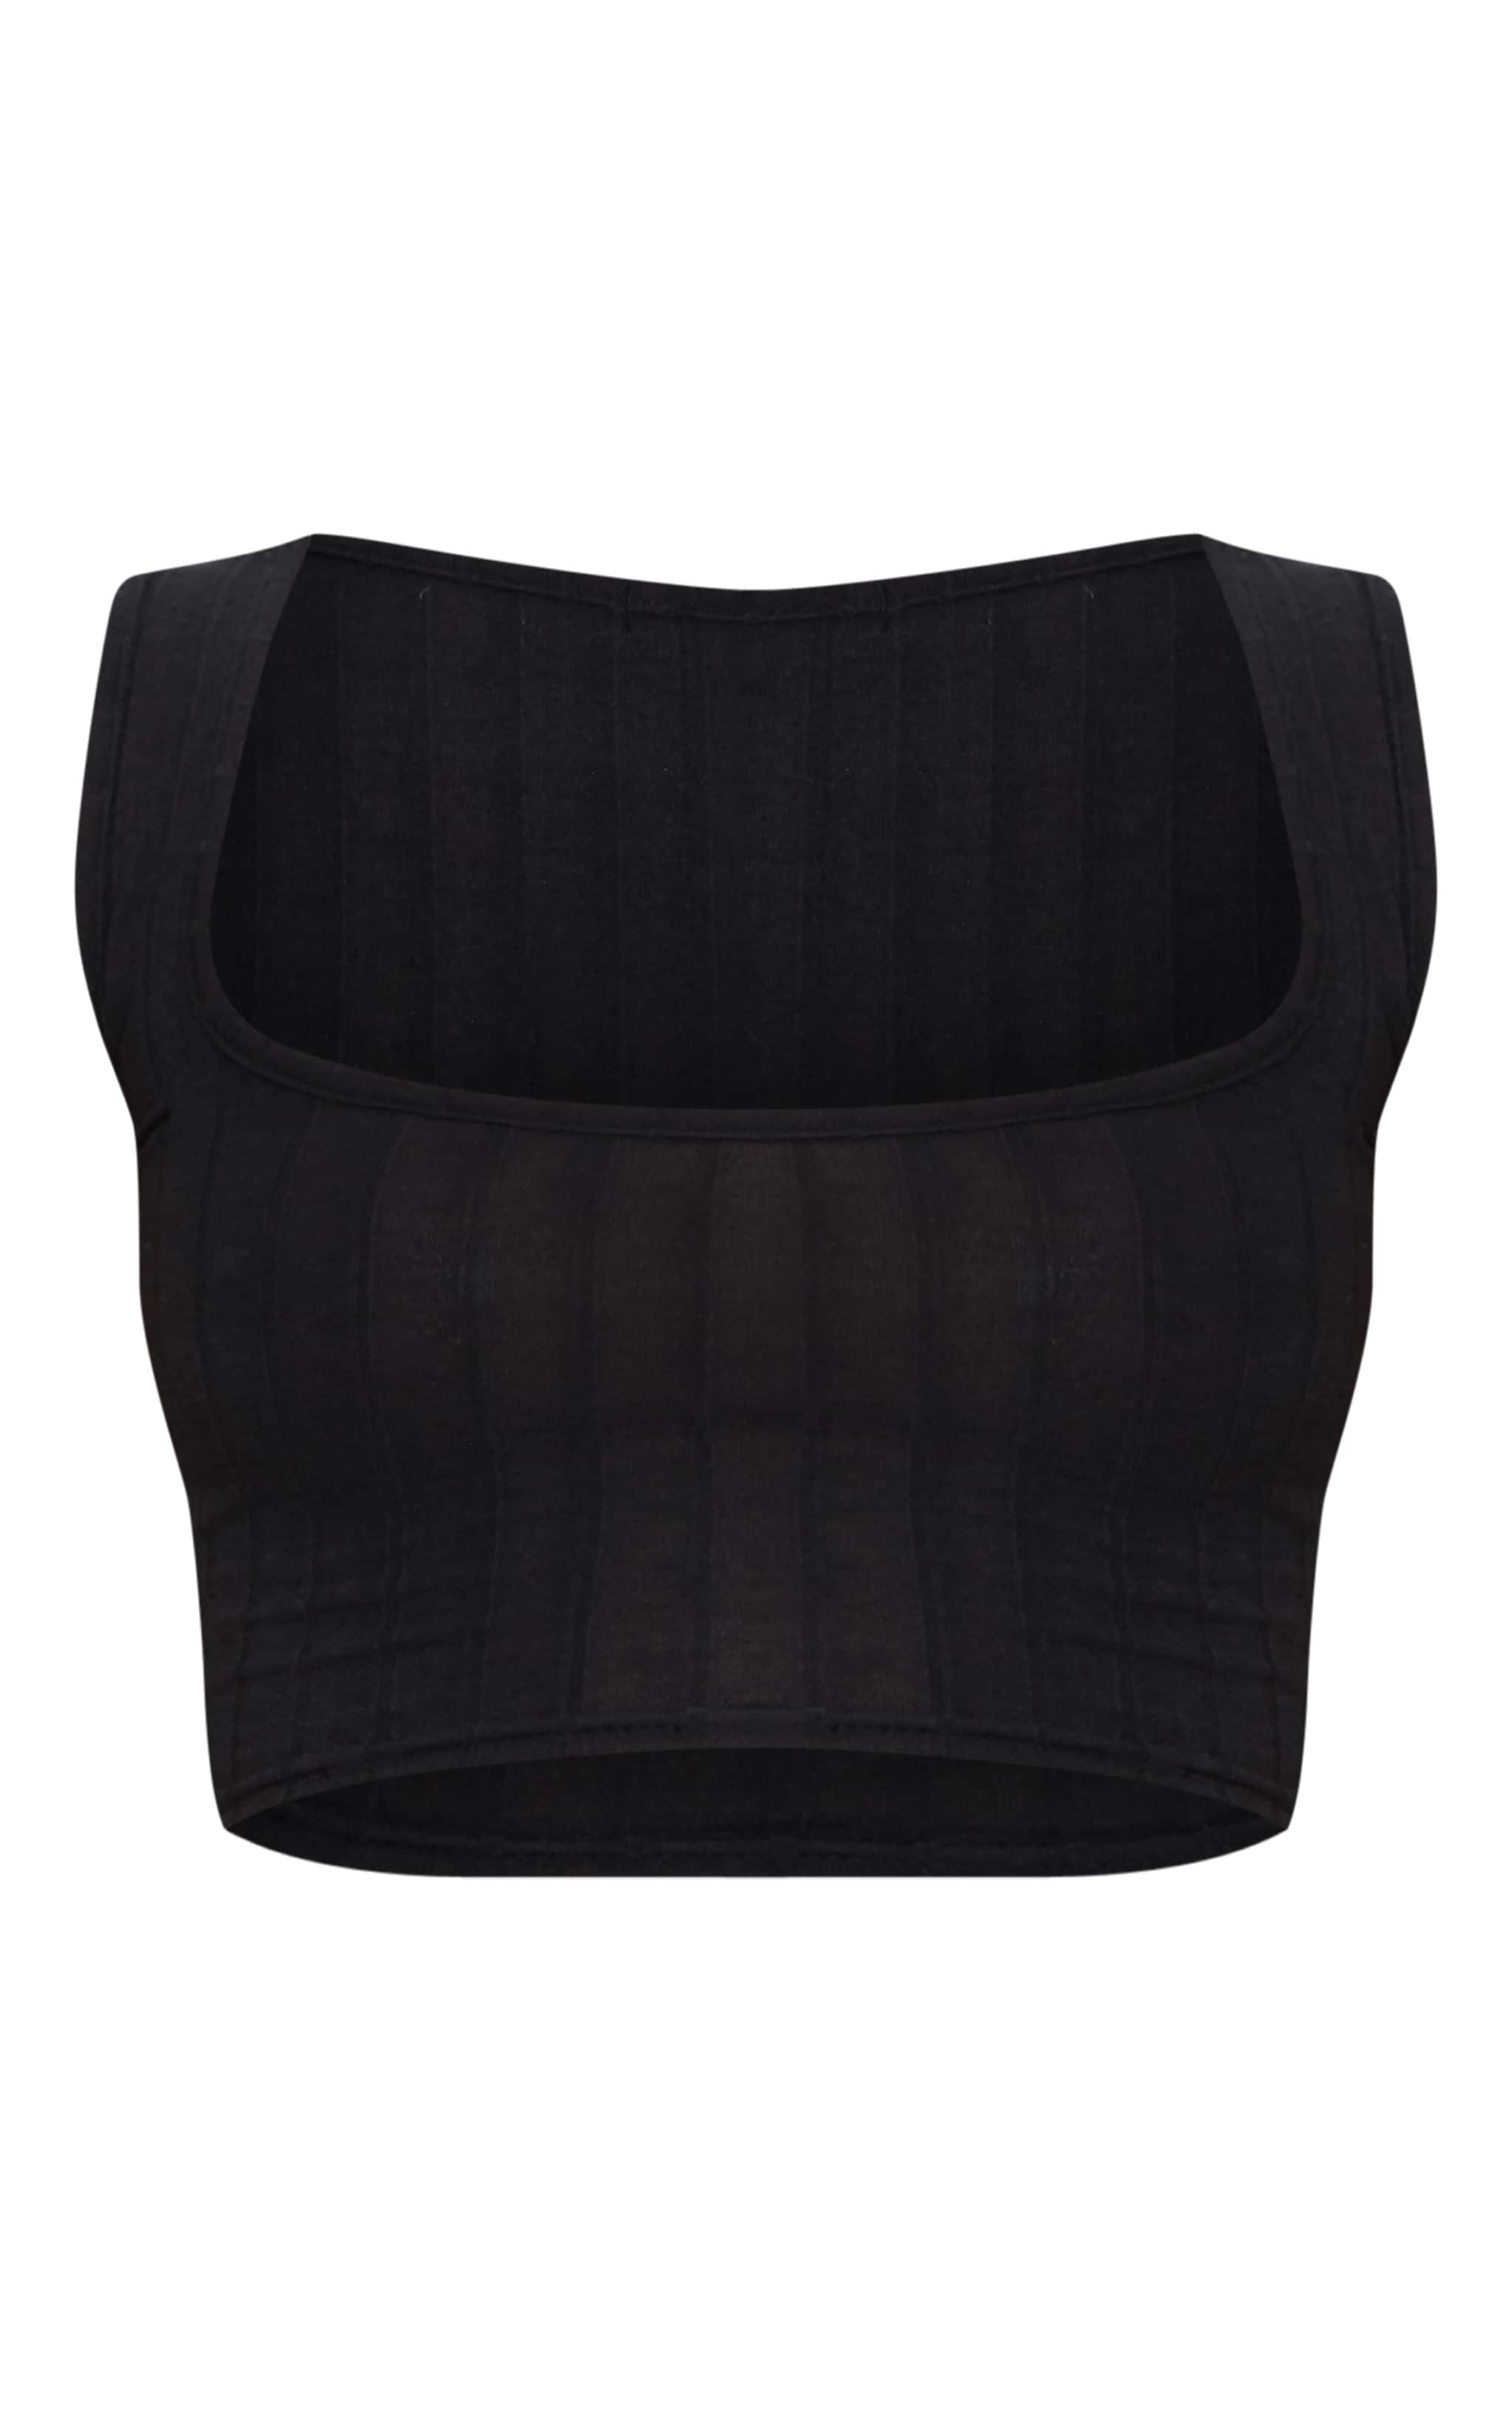 Petite Black Ribbed Square Neck Crop Top 3